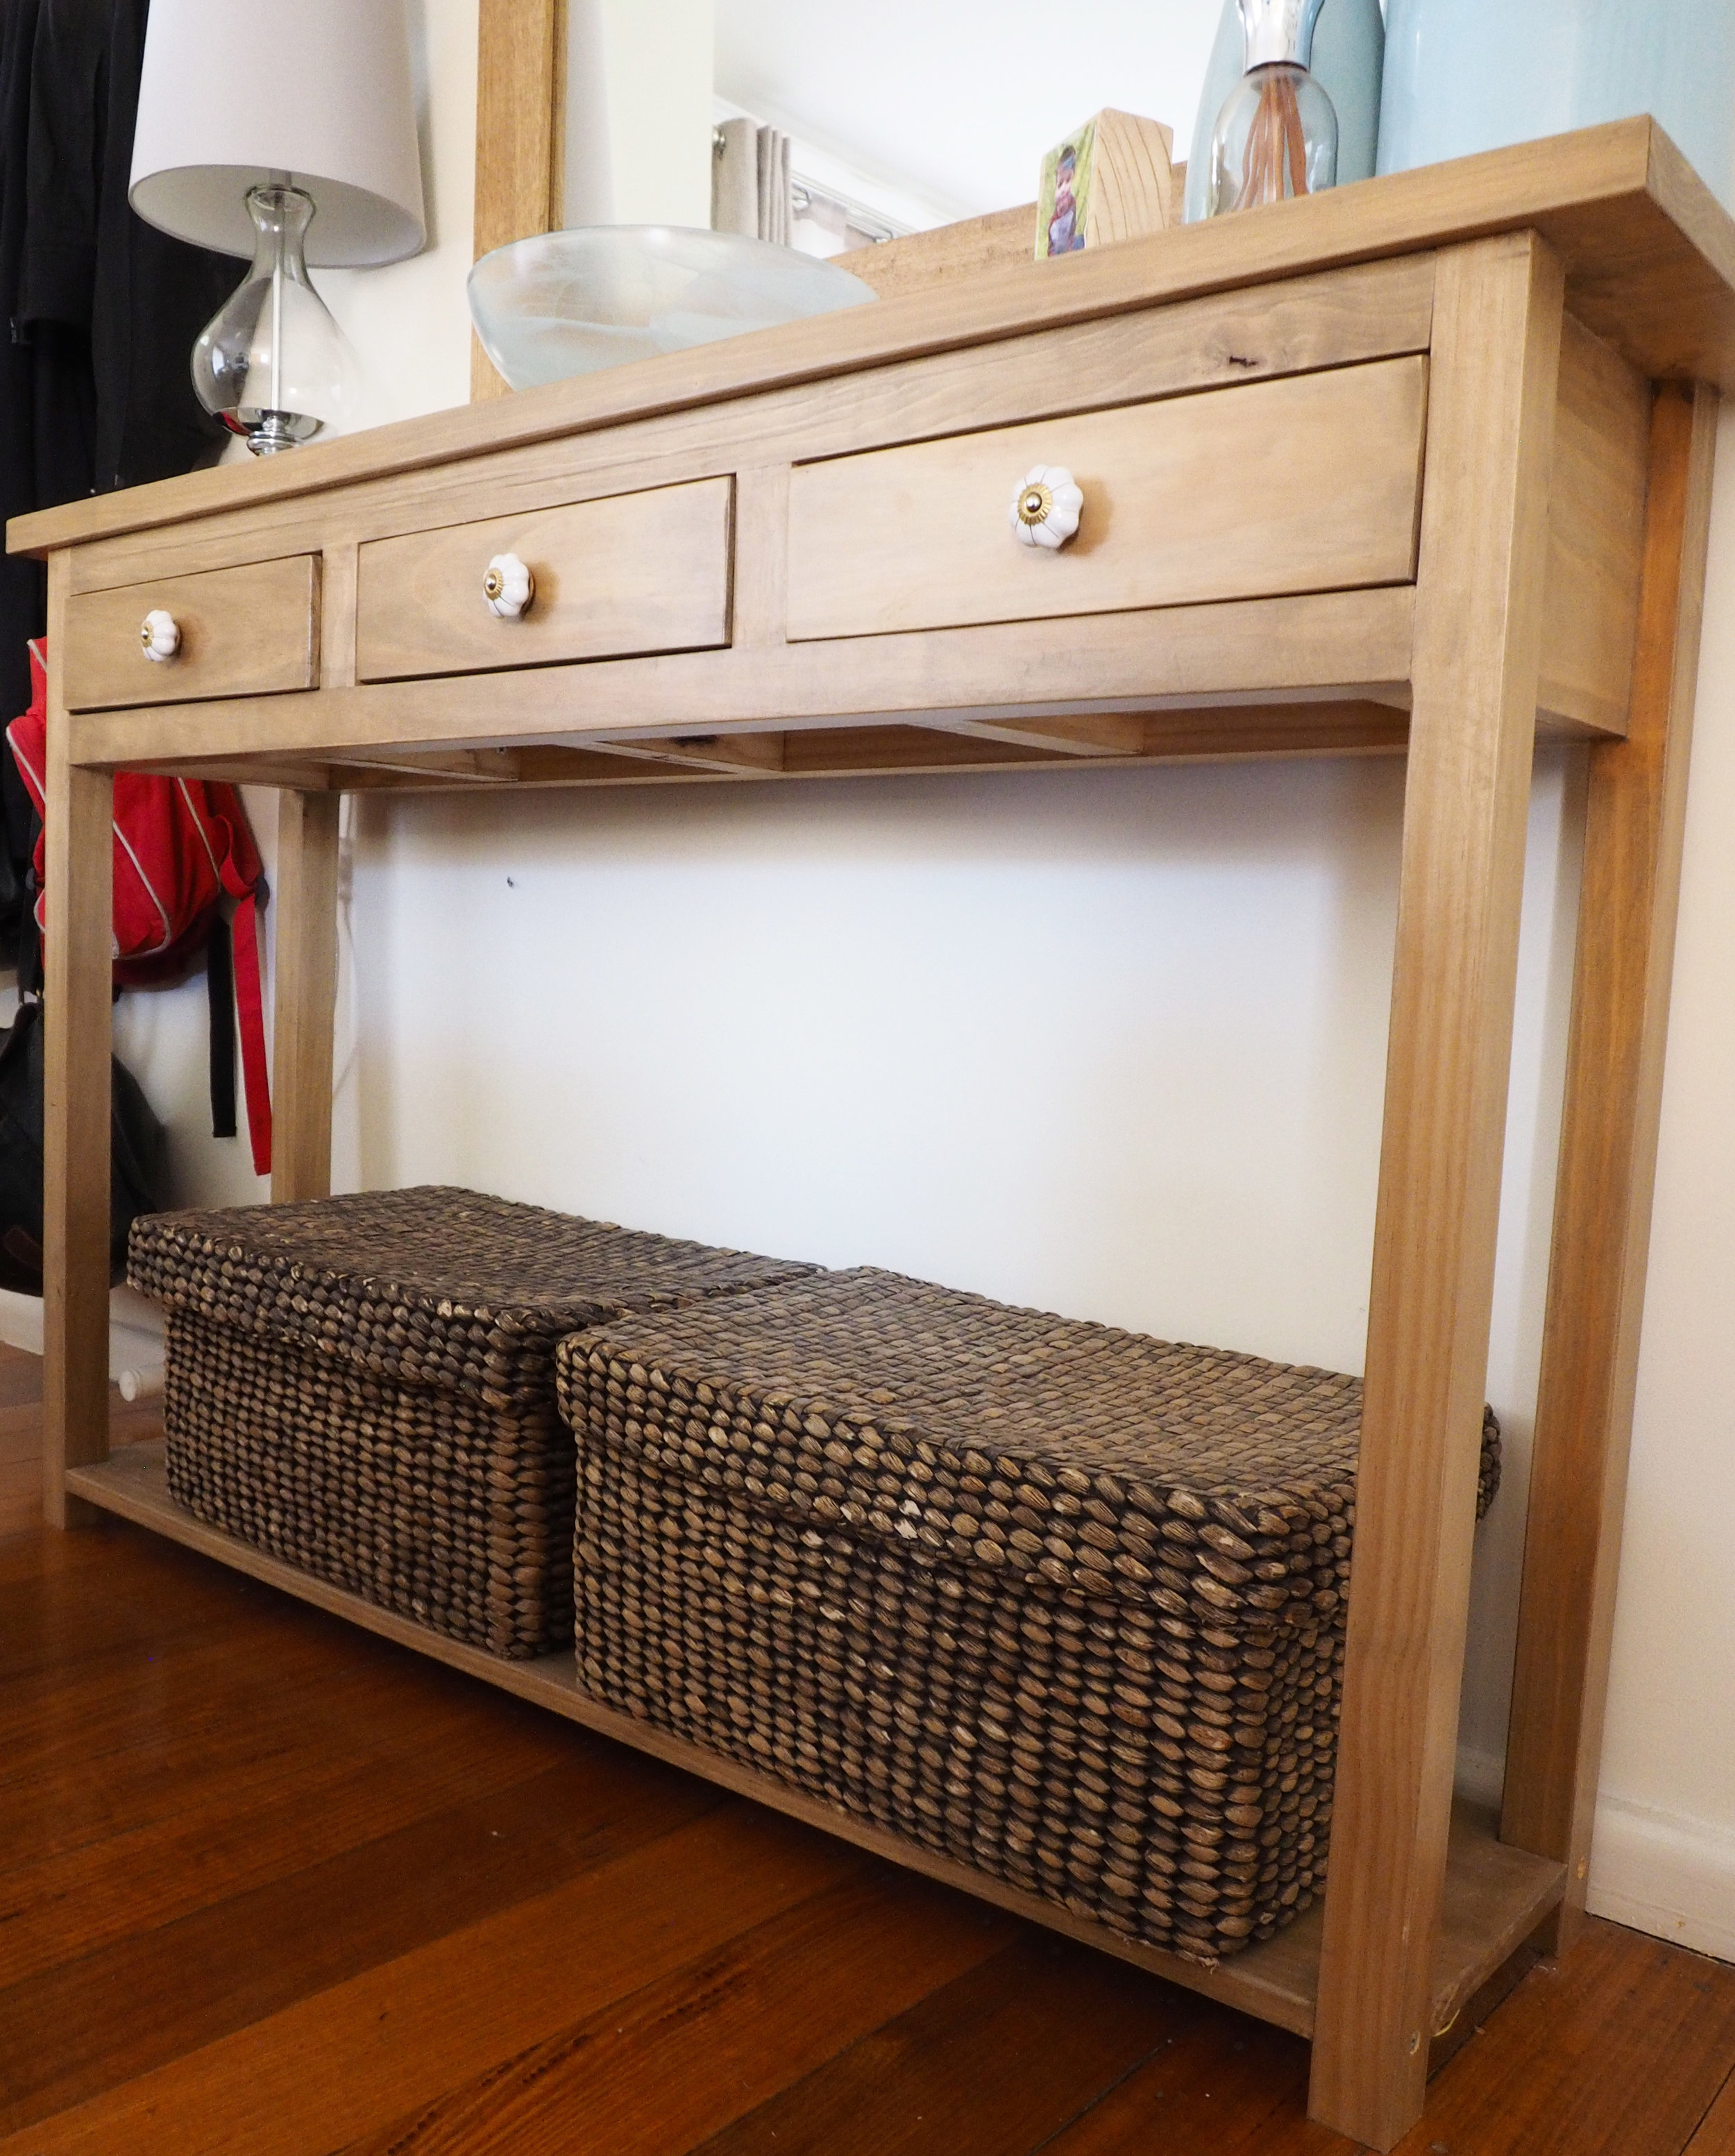 Storage baskets help to keep things organised and contain items - The Organised You